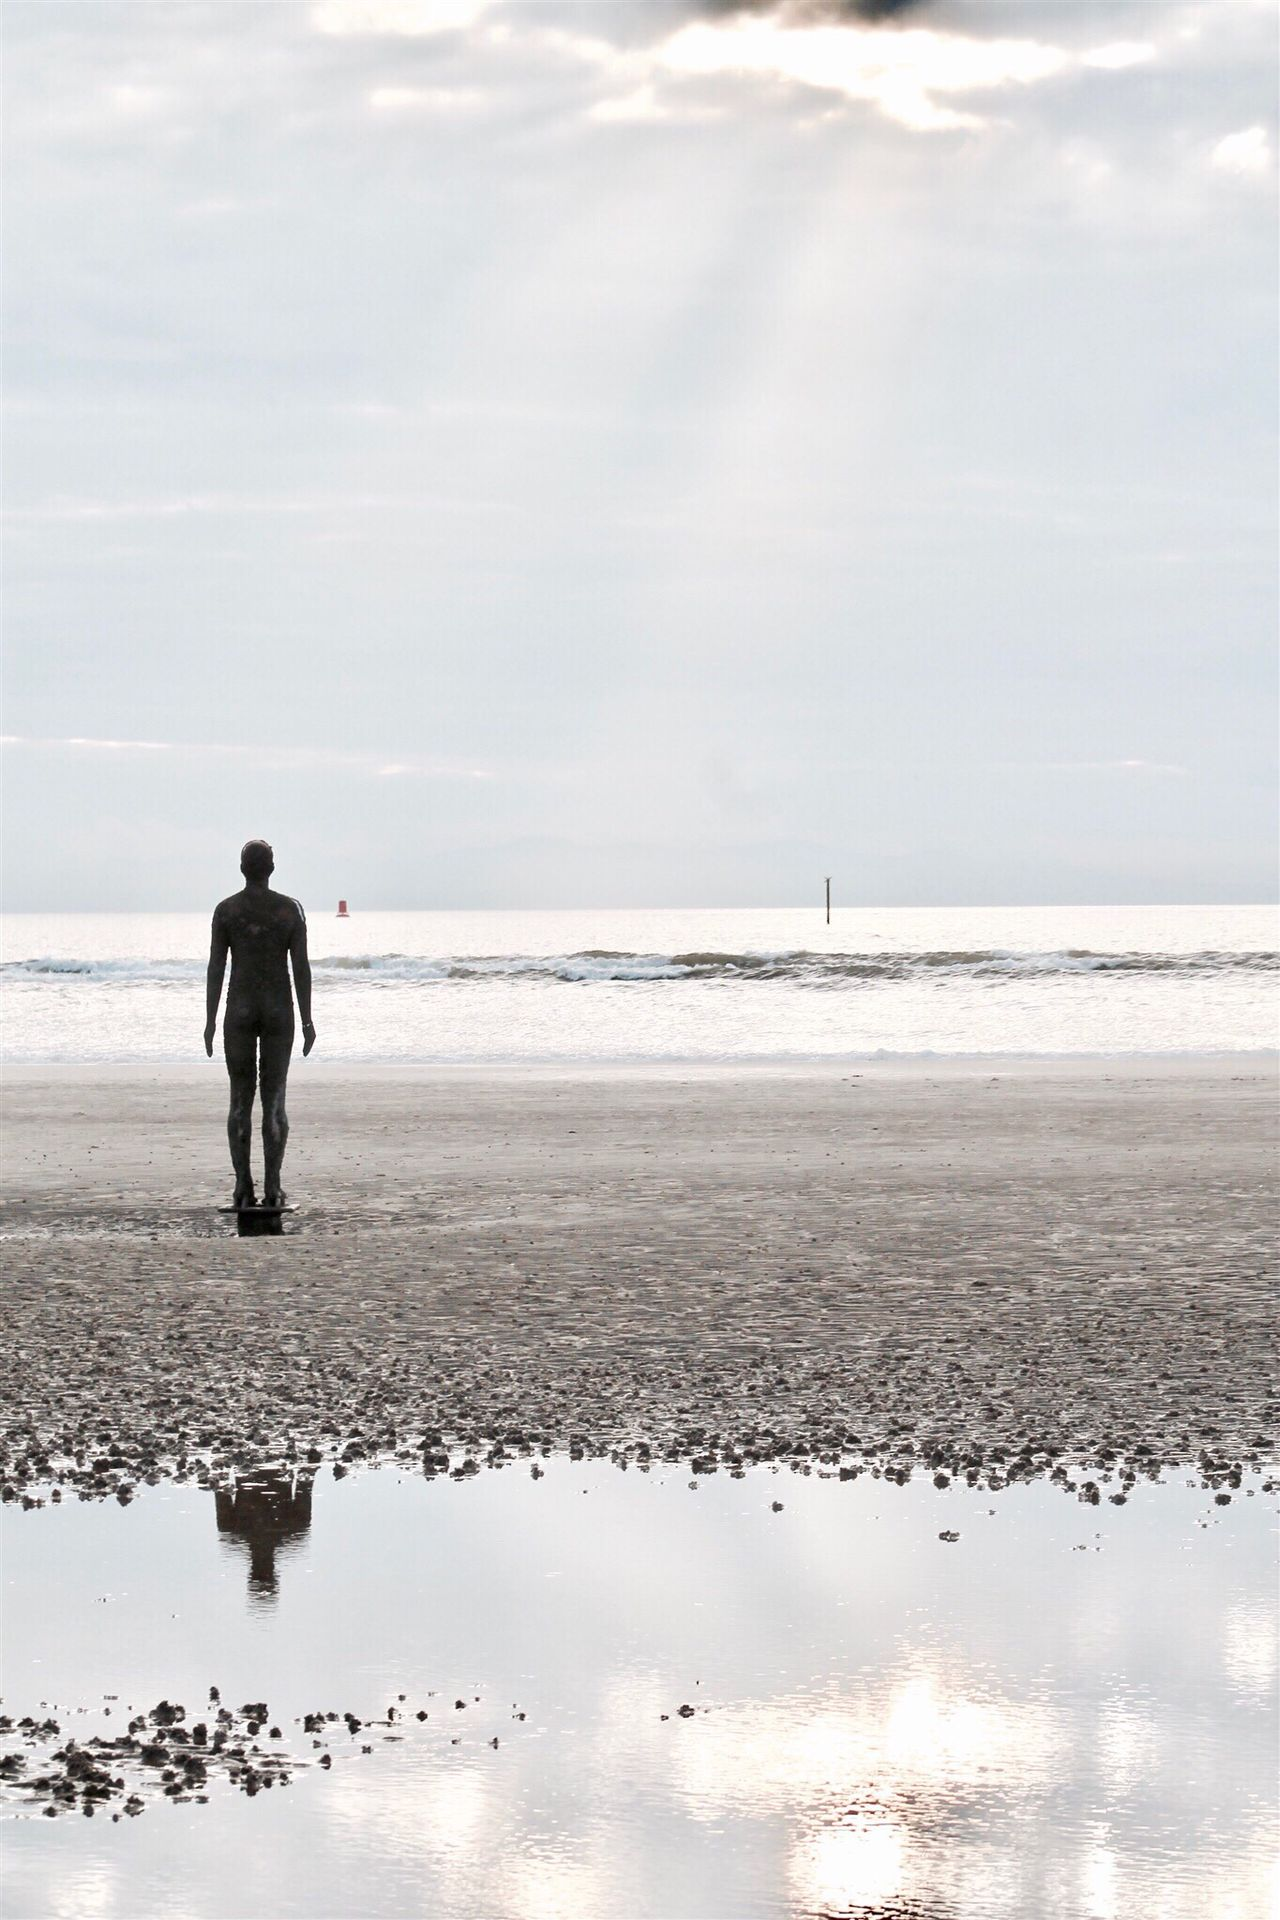 Beach Water Sea Horizon Over Water Rear View Sand Tranquil Scene Reflection Getting Away From It All Solitude Eye4photography  Outdoors EyeEm Nature Lover Taking Photos Liverpool Anotherplace Photography Cloud - Sky Beauty In Nature Nature Eyeemphotography Crosby Beach What Who Where